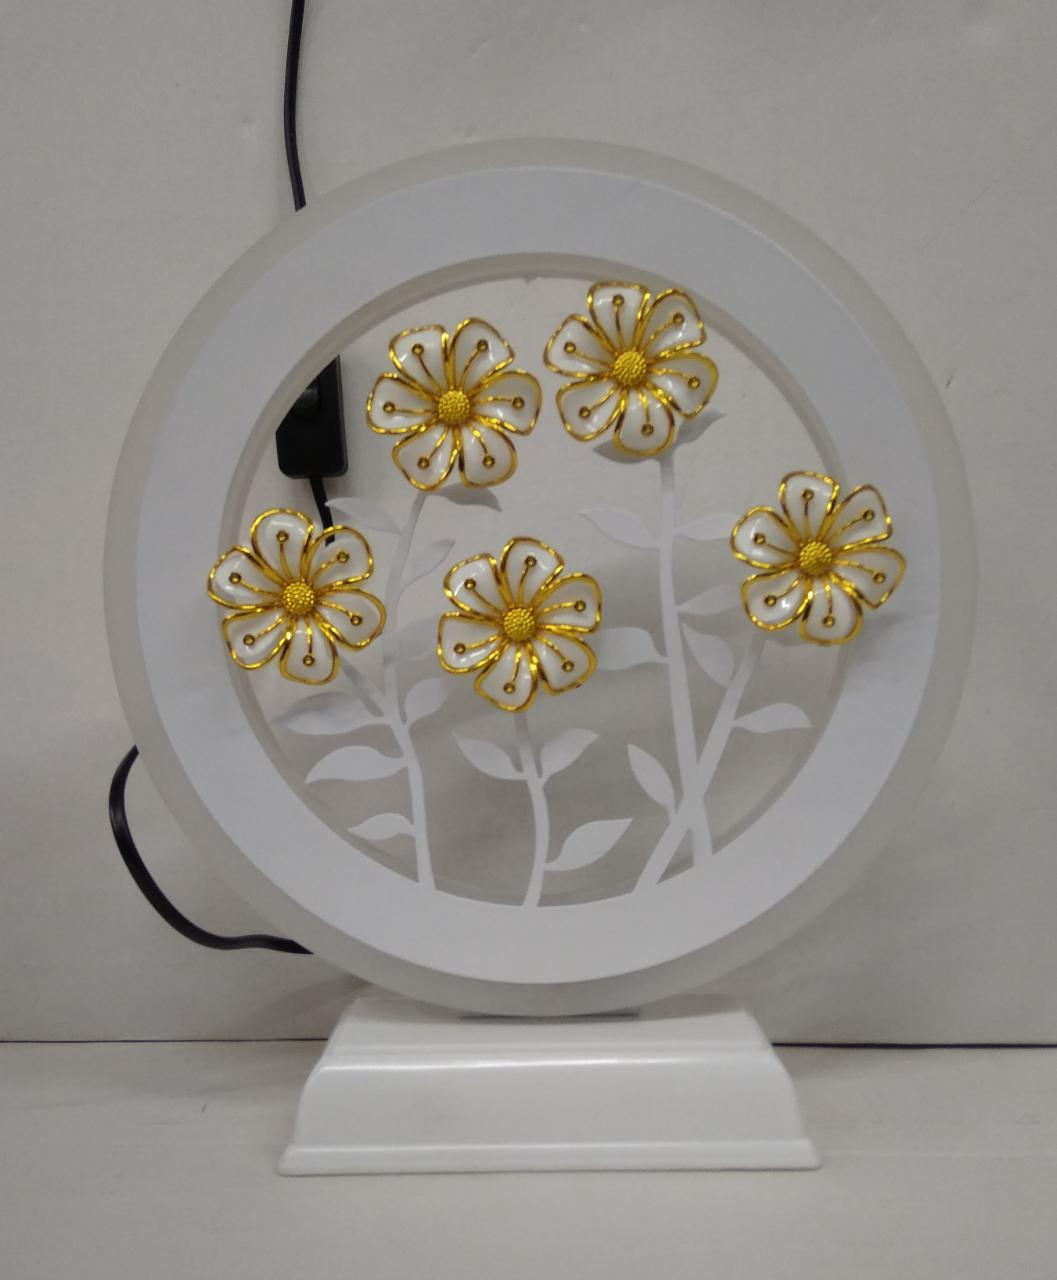 LED Night Lamp With Floral Design(DLM79)